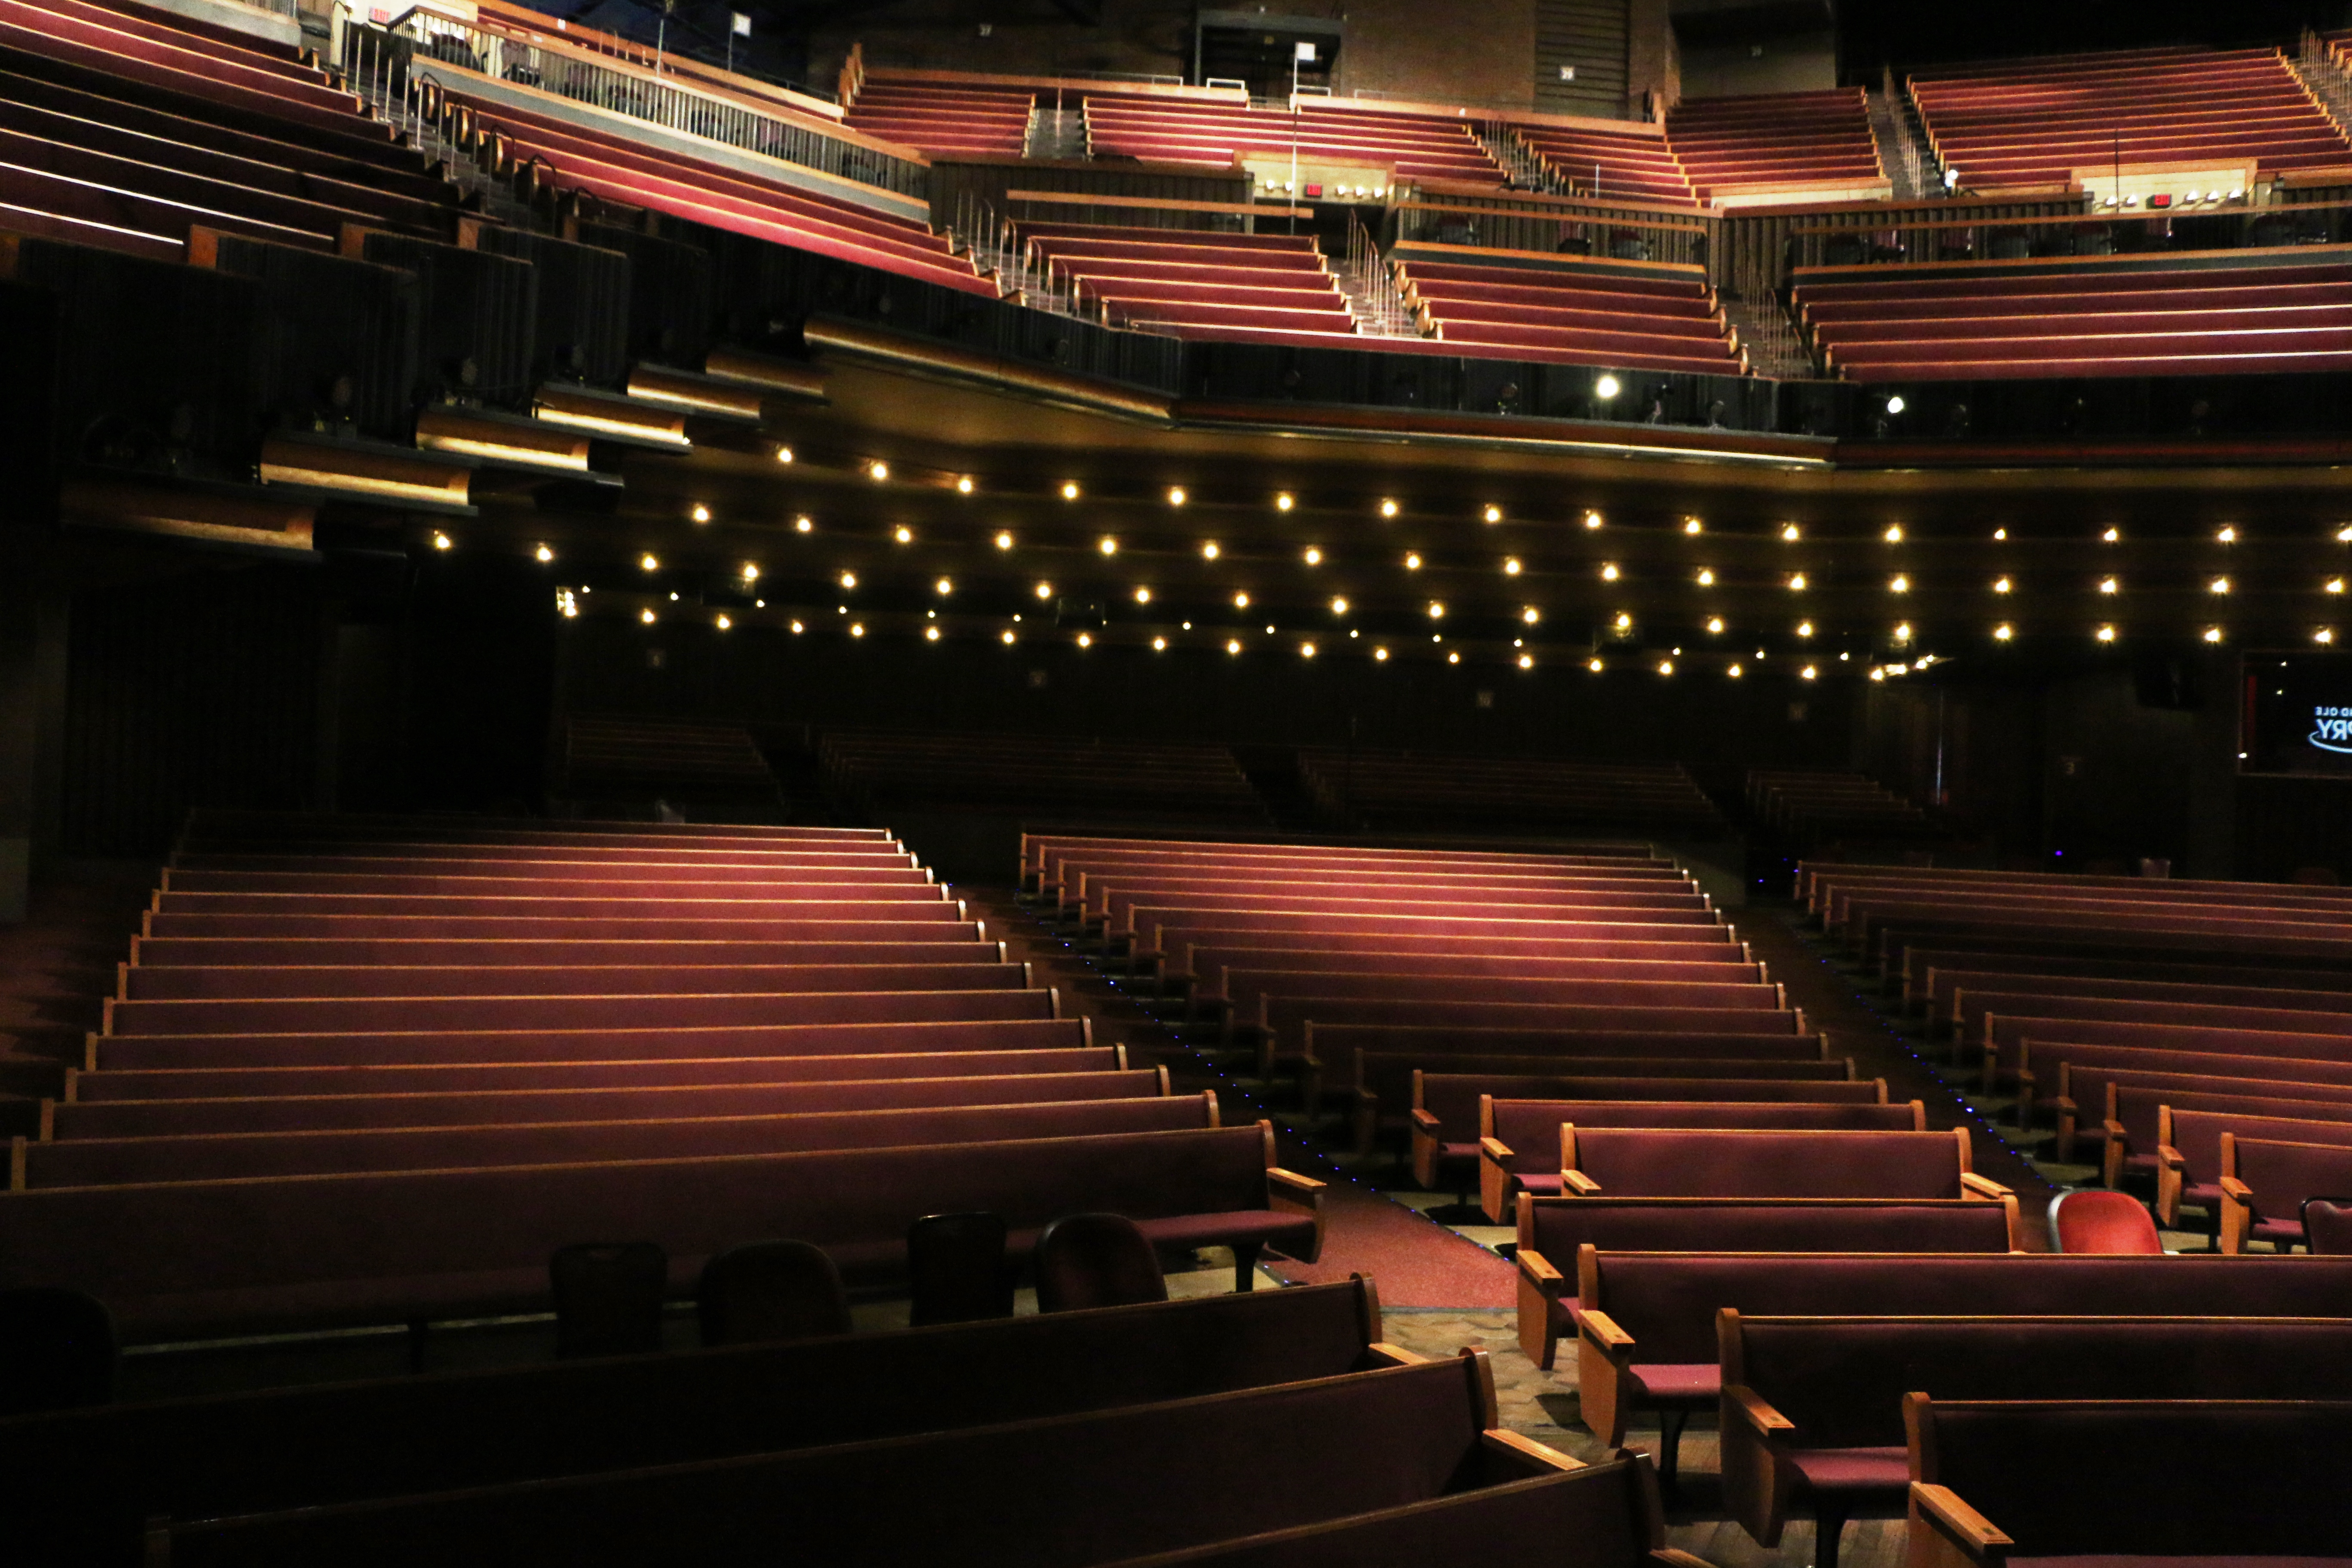 Enjoy the legendary Grand Ole Opry where many greats have taken the stage!